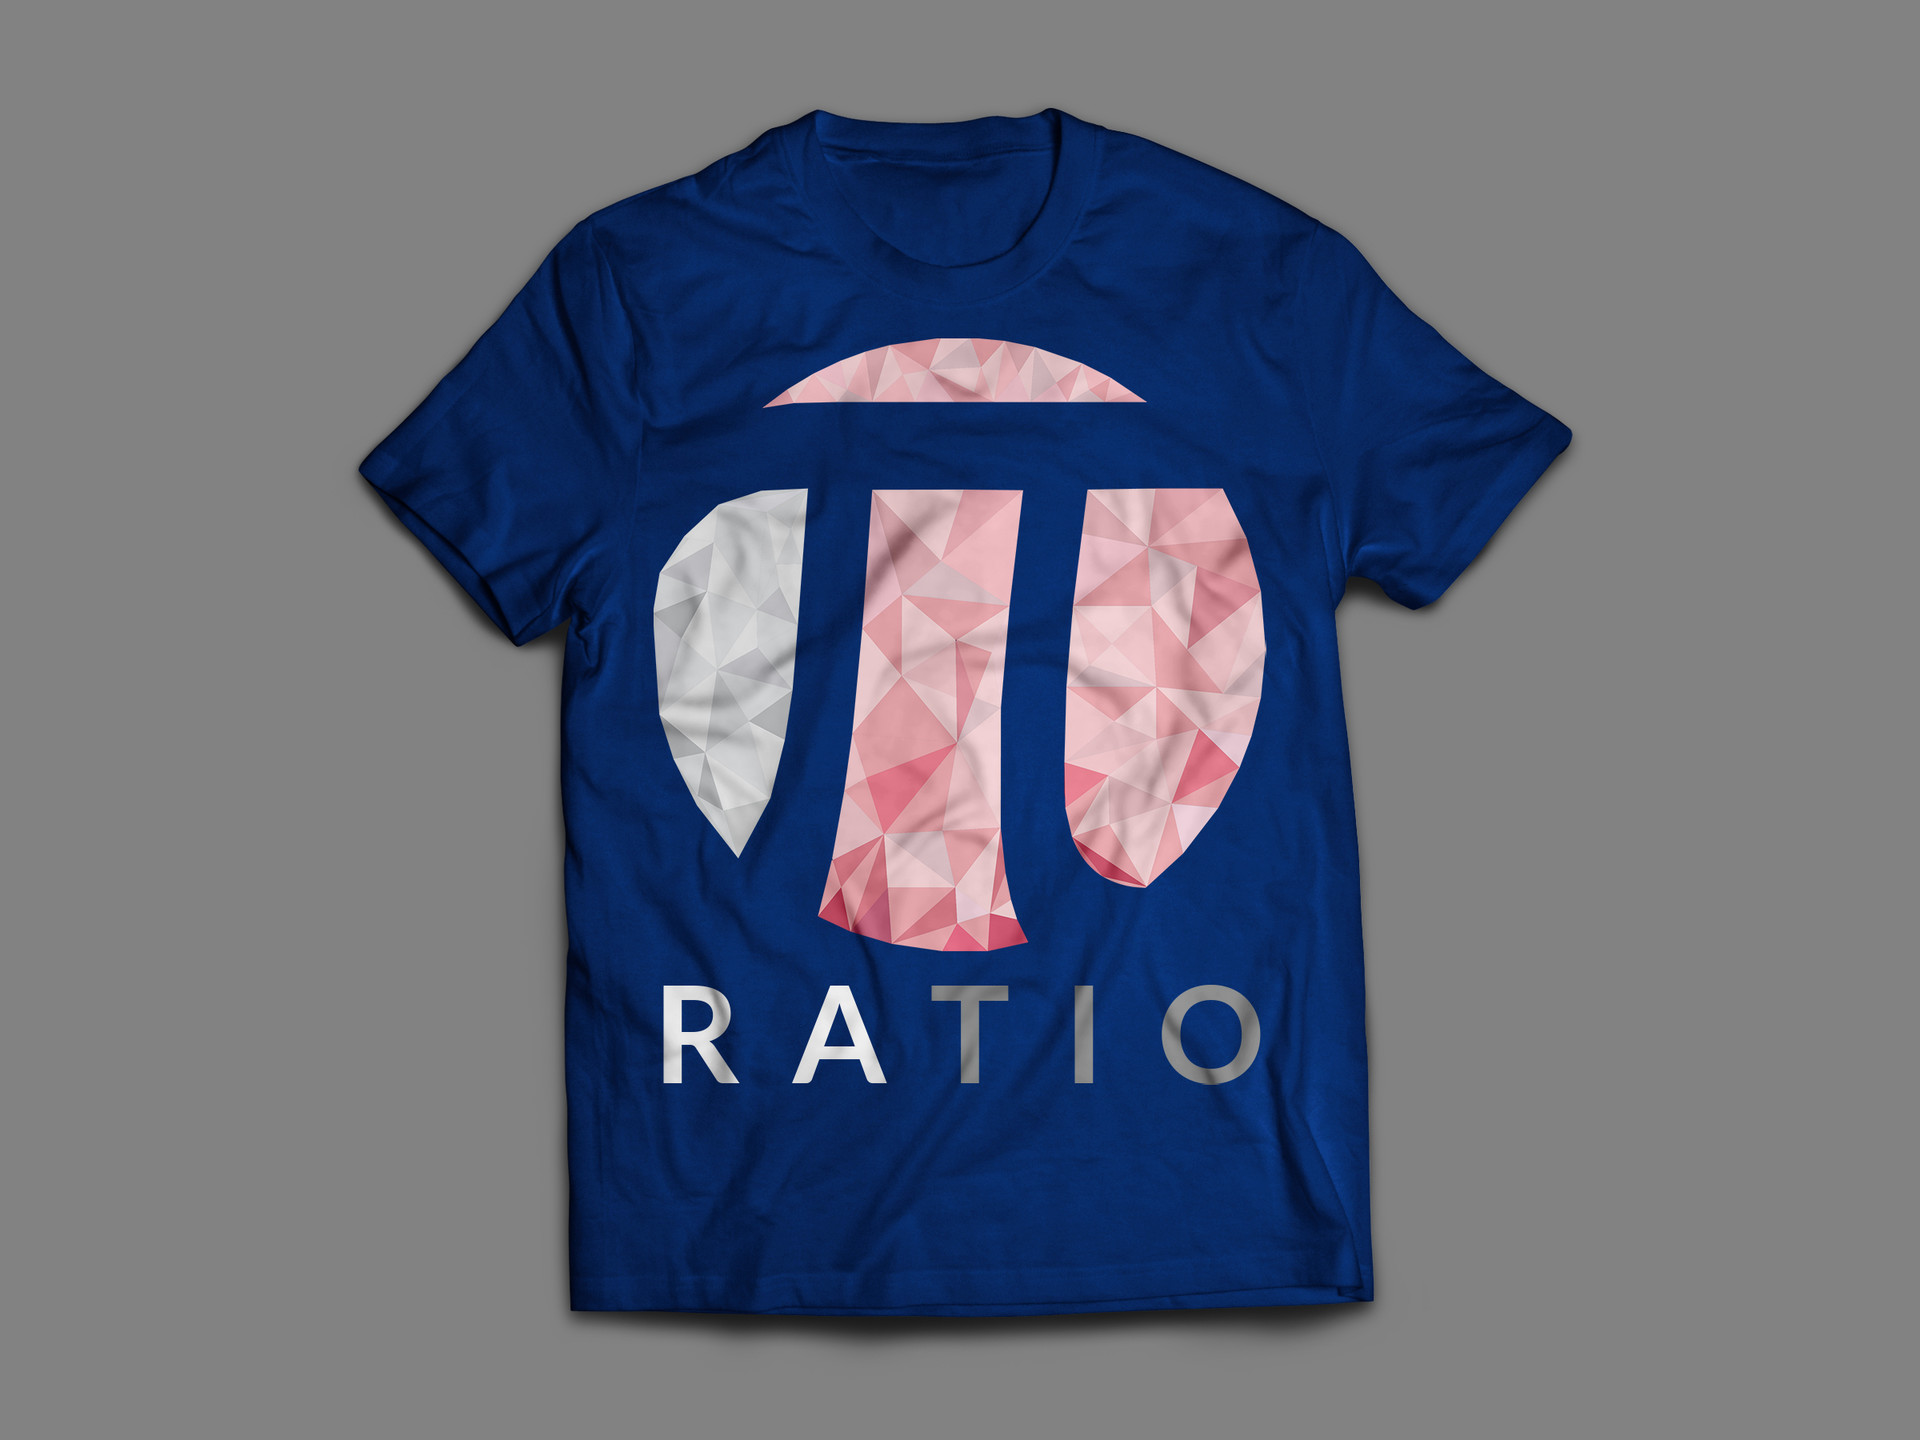 Jerry ubah ratio tshirt front 3